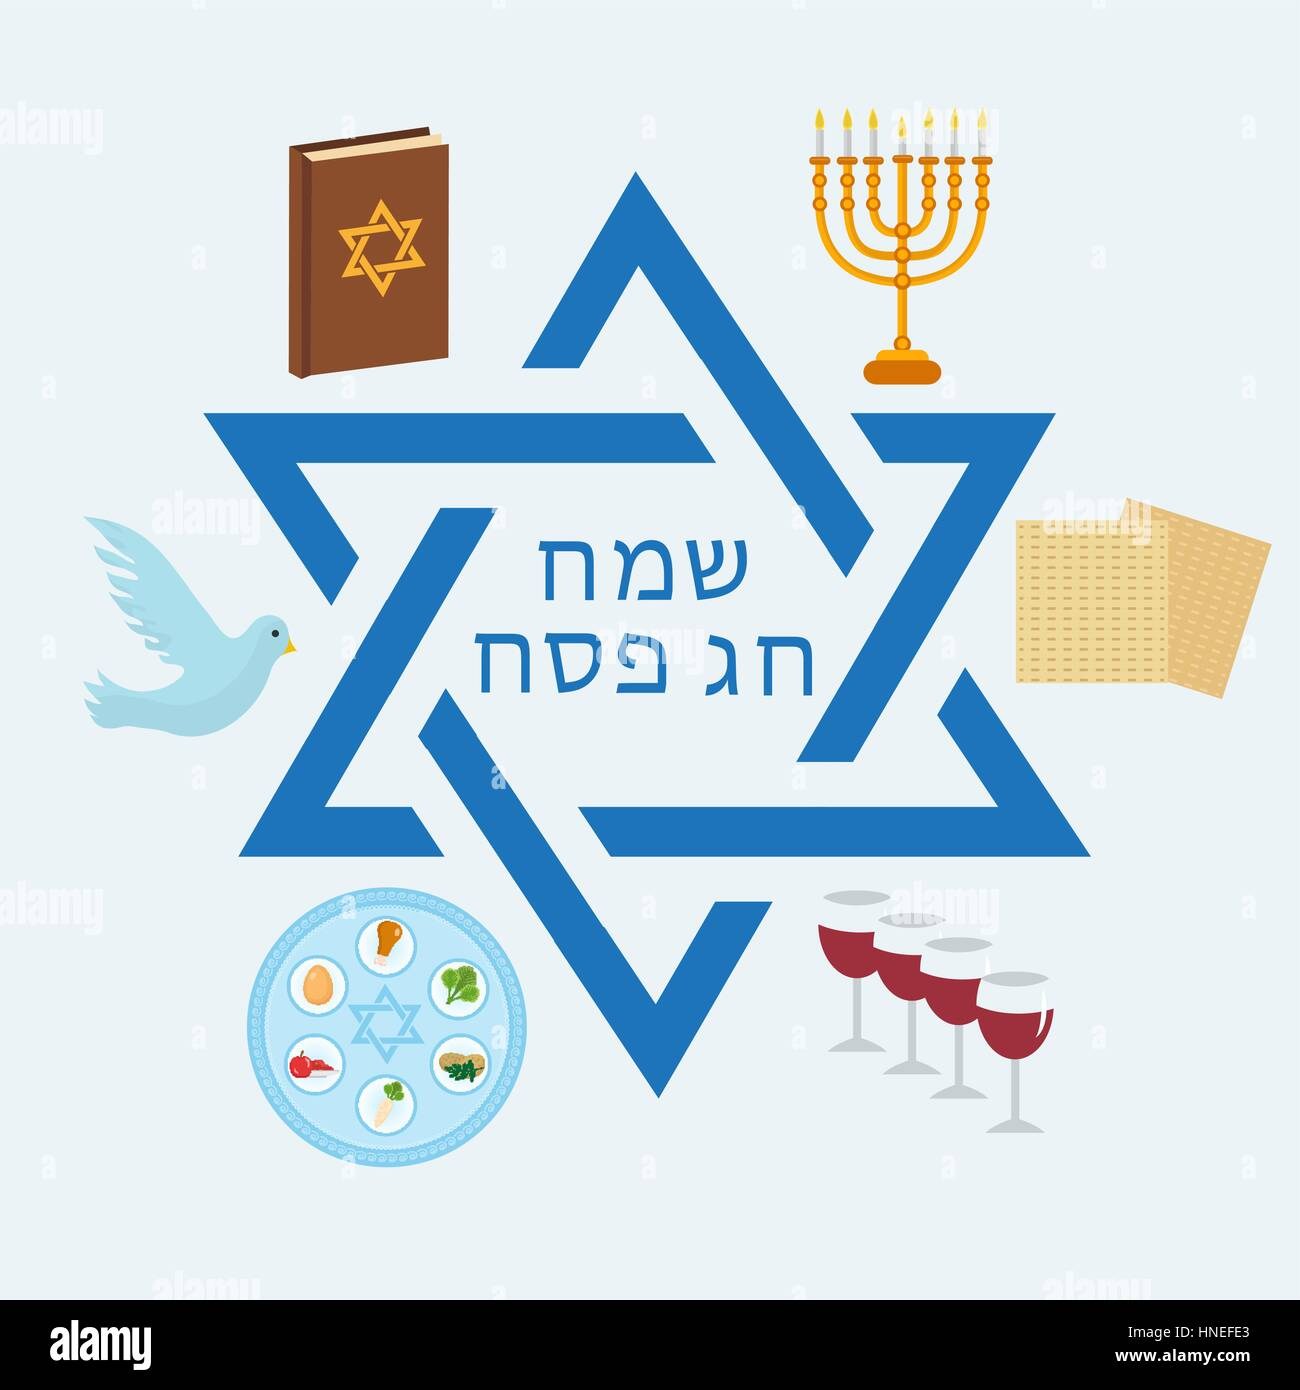 Happy passover greeting card with torus menorah wine matzoh stock happy passover greeting card with torus menorah wine matzoh seder holiday jewish exodus from egypt pesach template for your design m4hsunfo